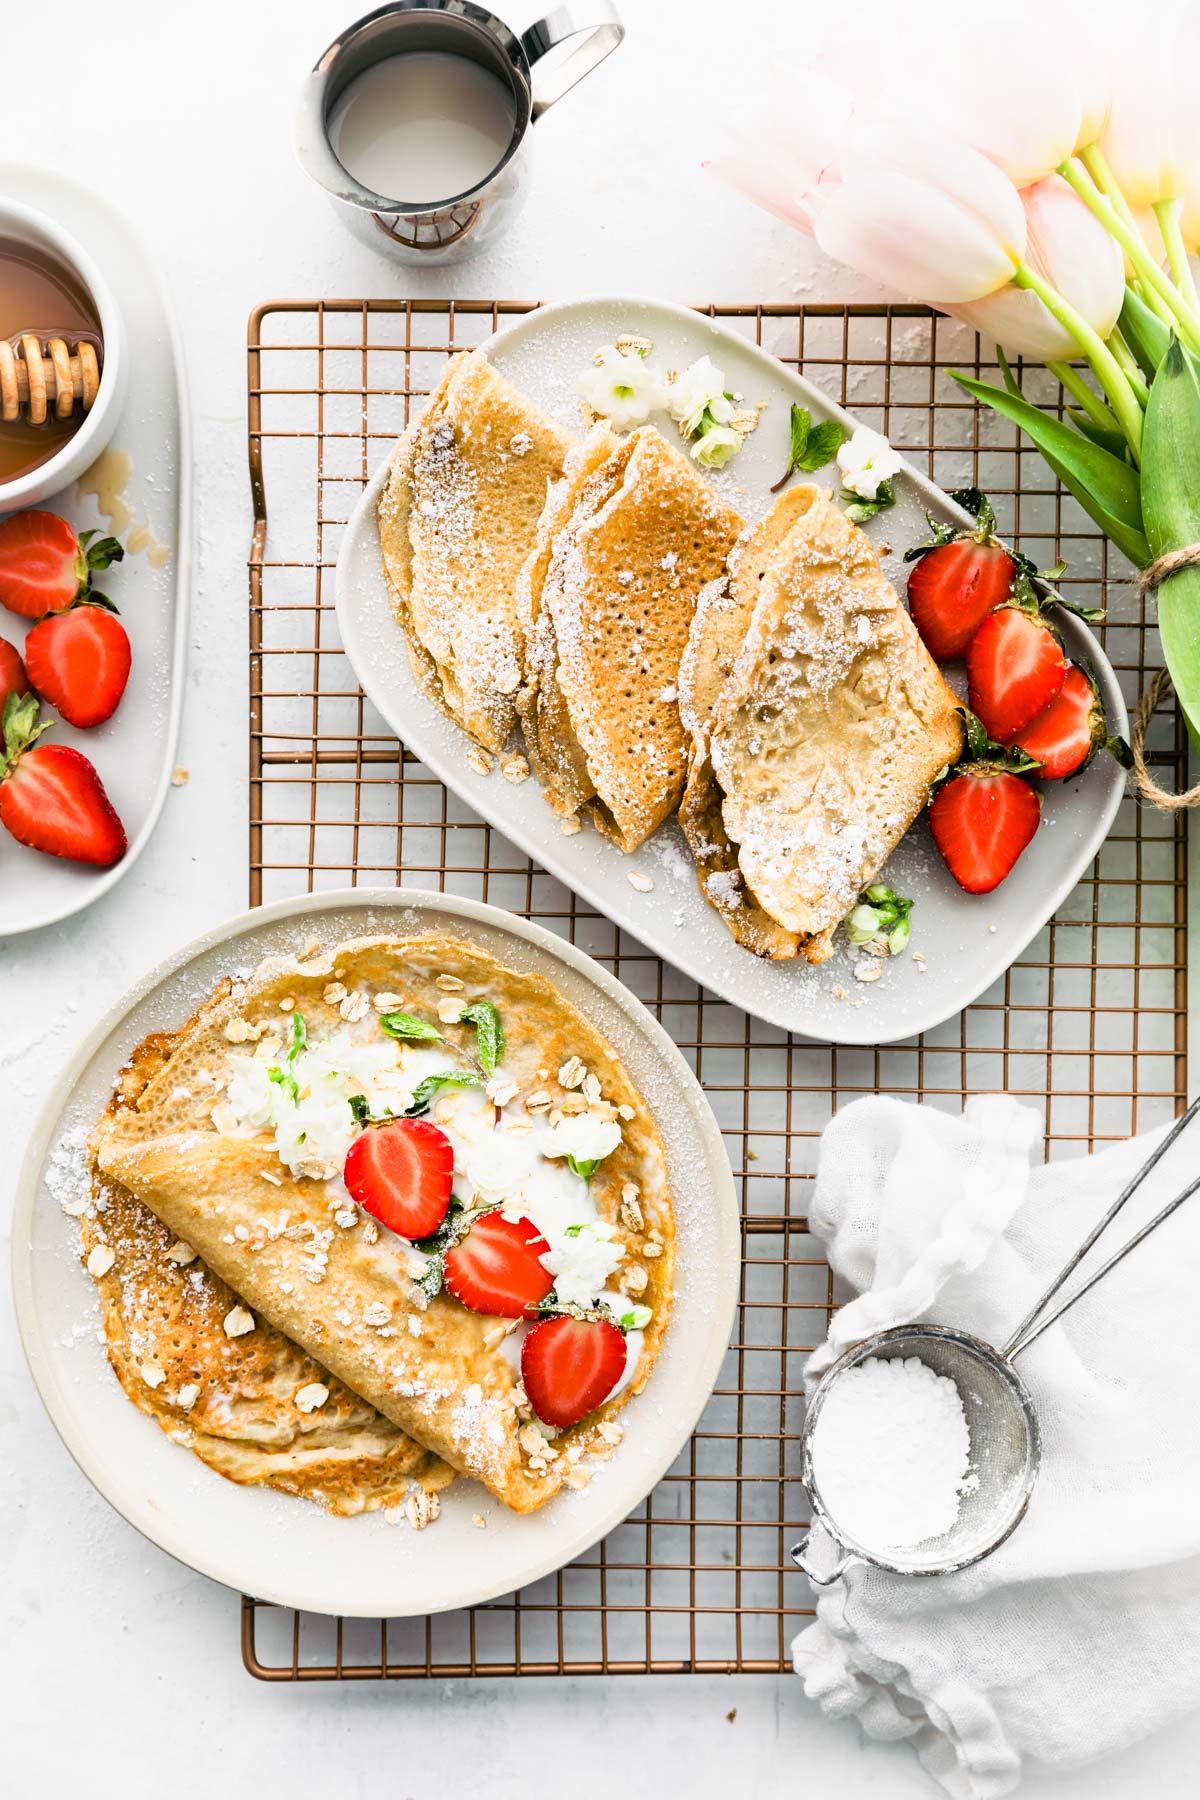 plated oatmeal crepes topped with fresh strawberries